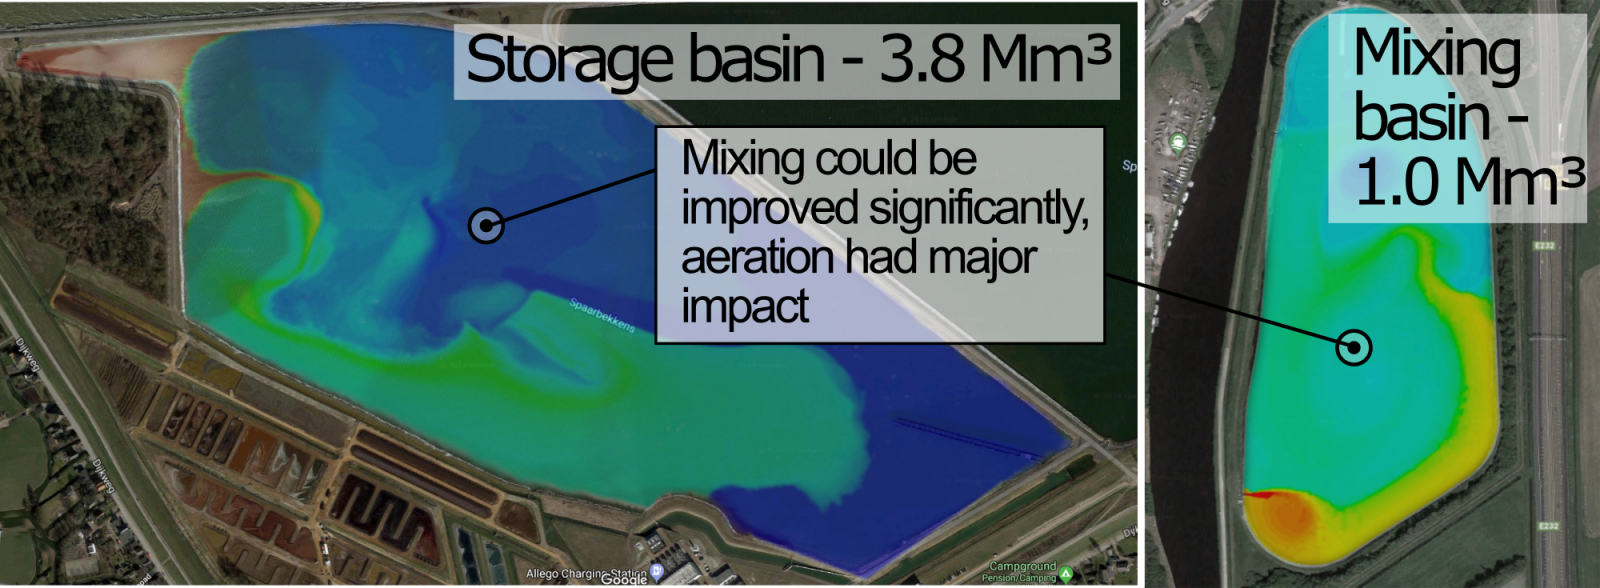 Drinking water storage basin simulation